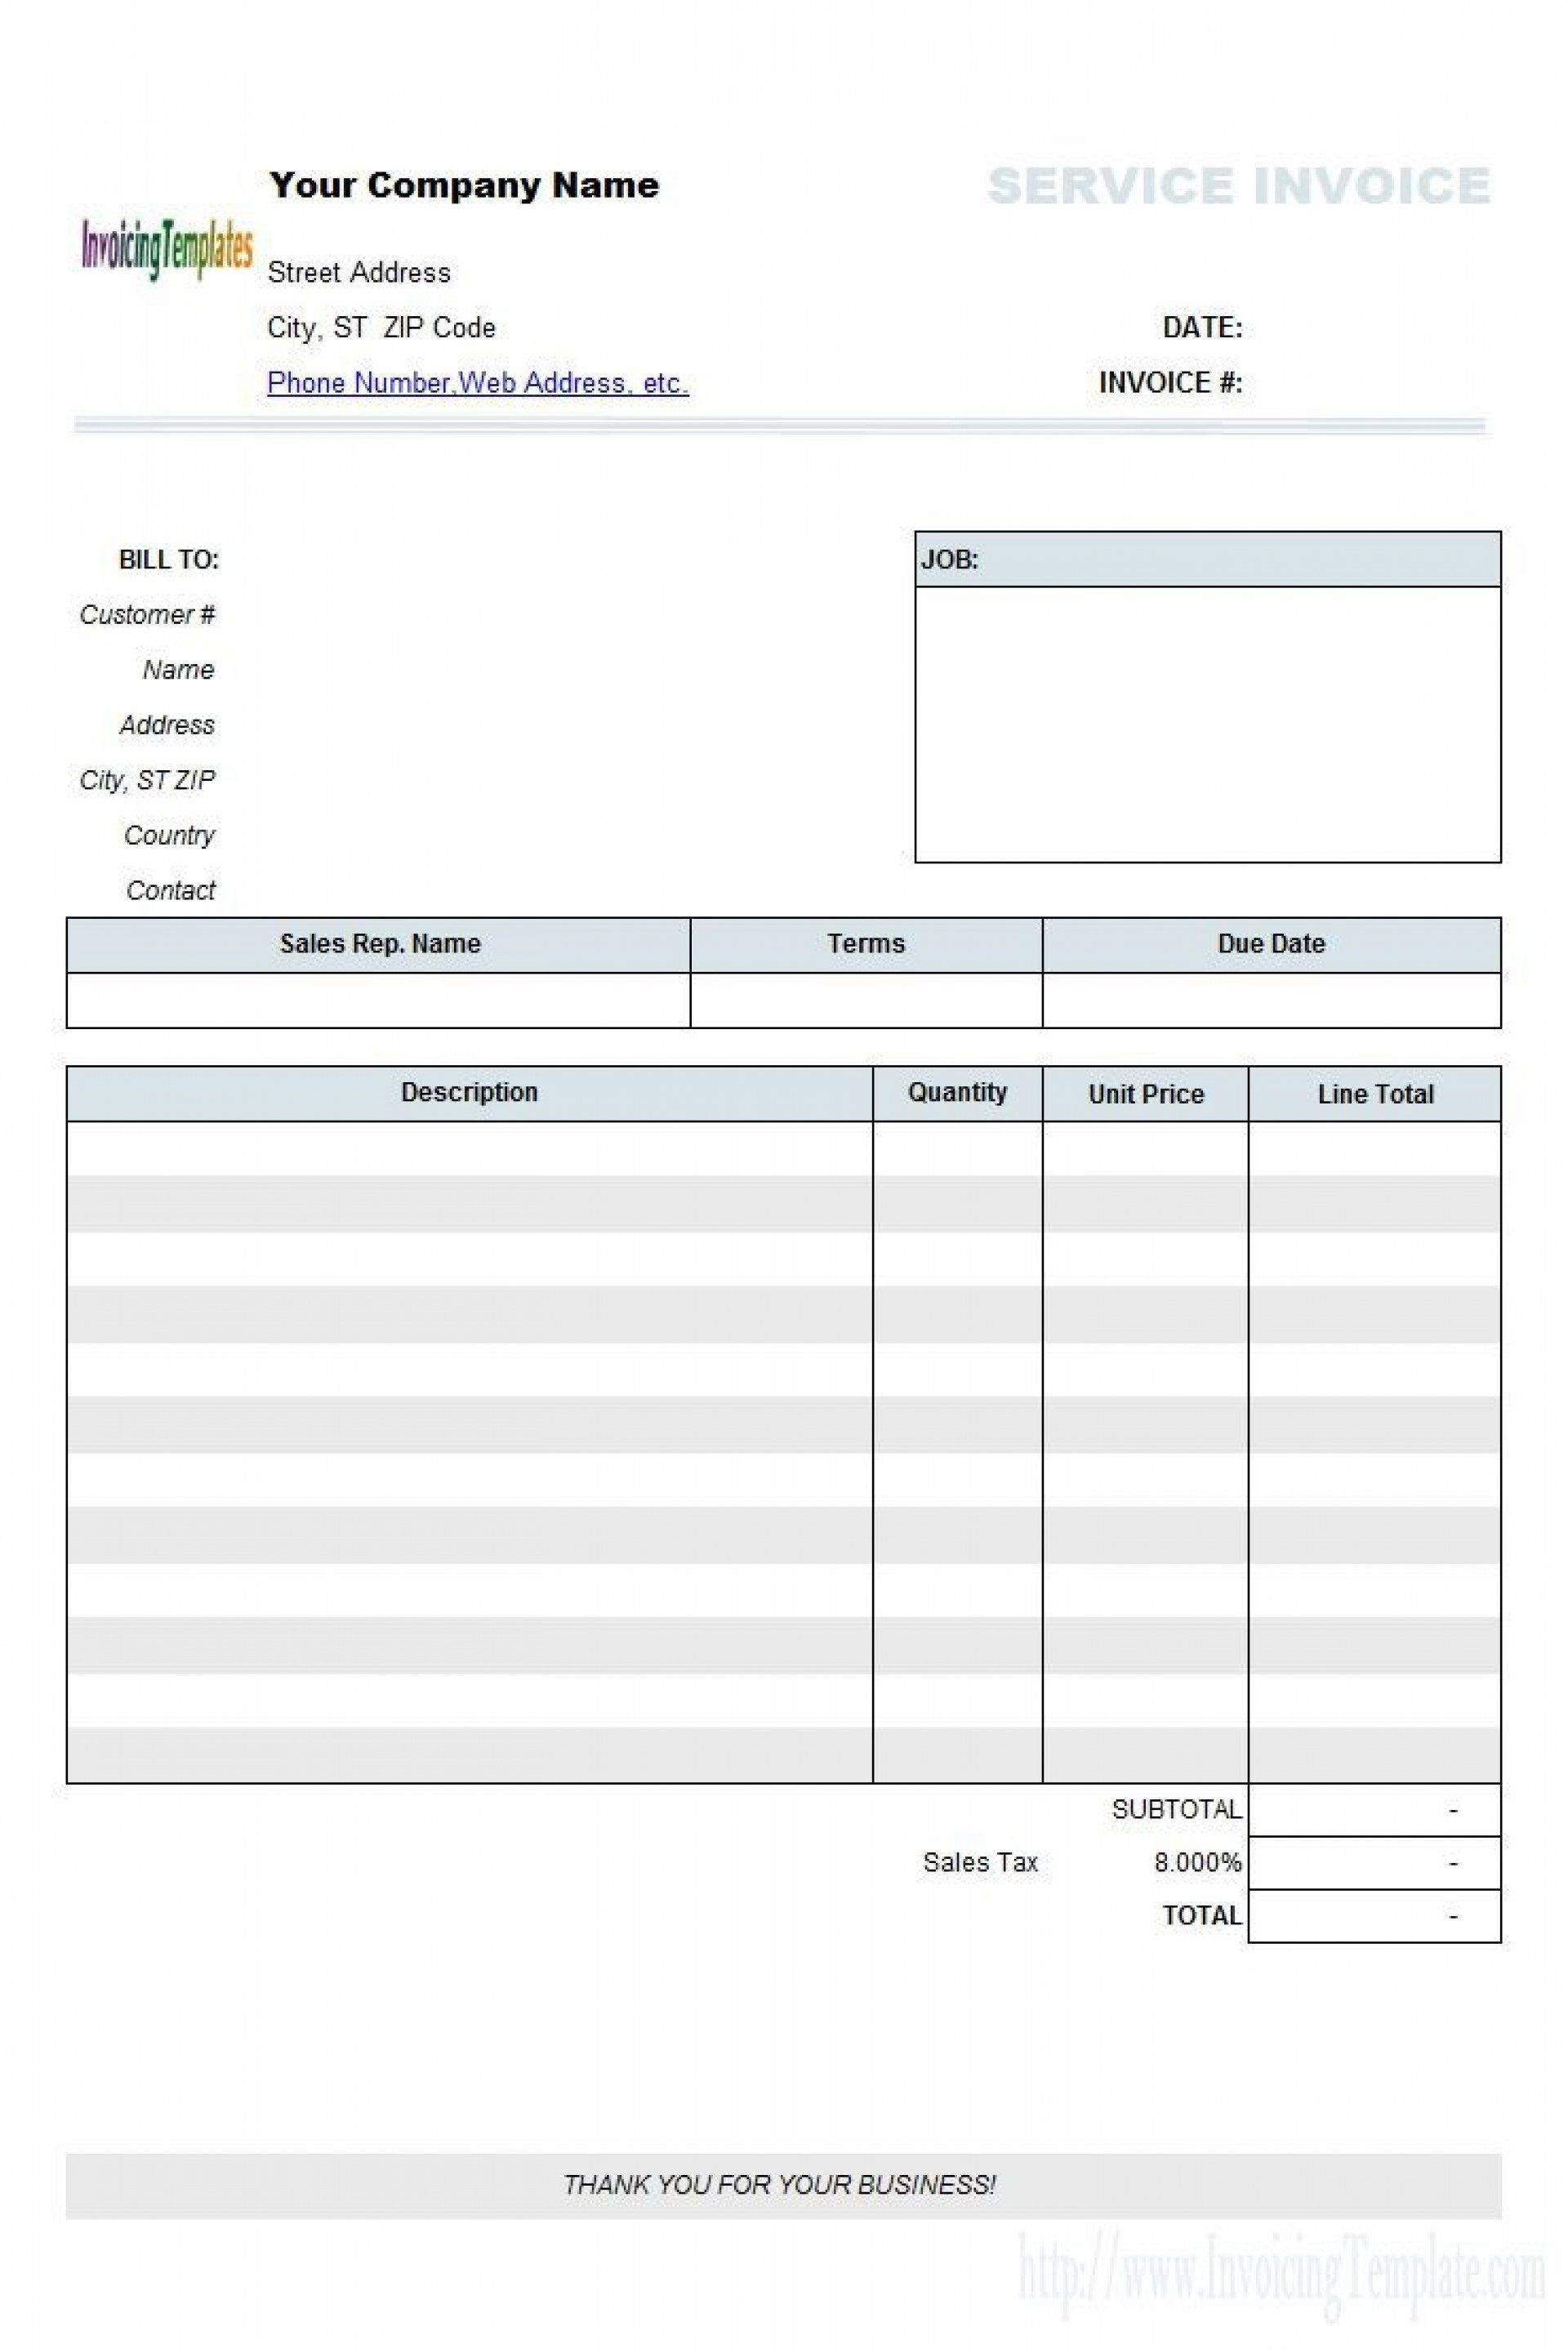 007 Marvelou Free Tax Invoice Template Excel South Africa Photo 1920